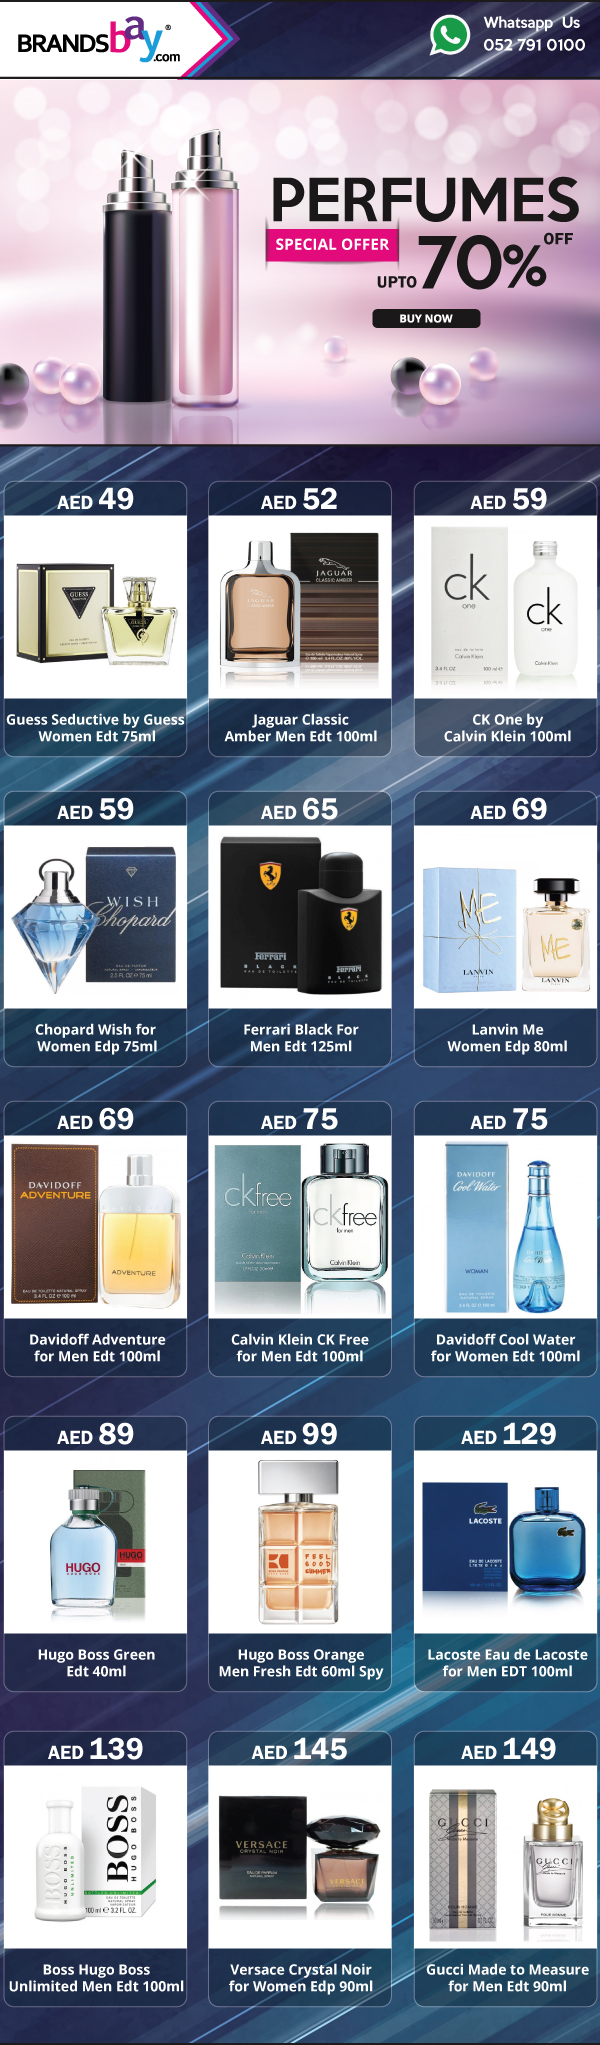 Special Offer!! Get up to 70% off on Branded Perfumes Only at Brandsbay.com